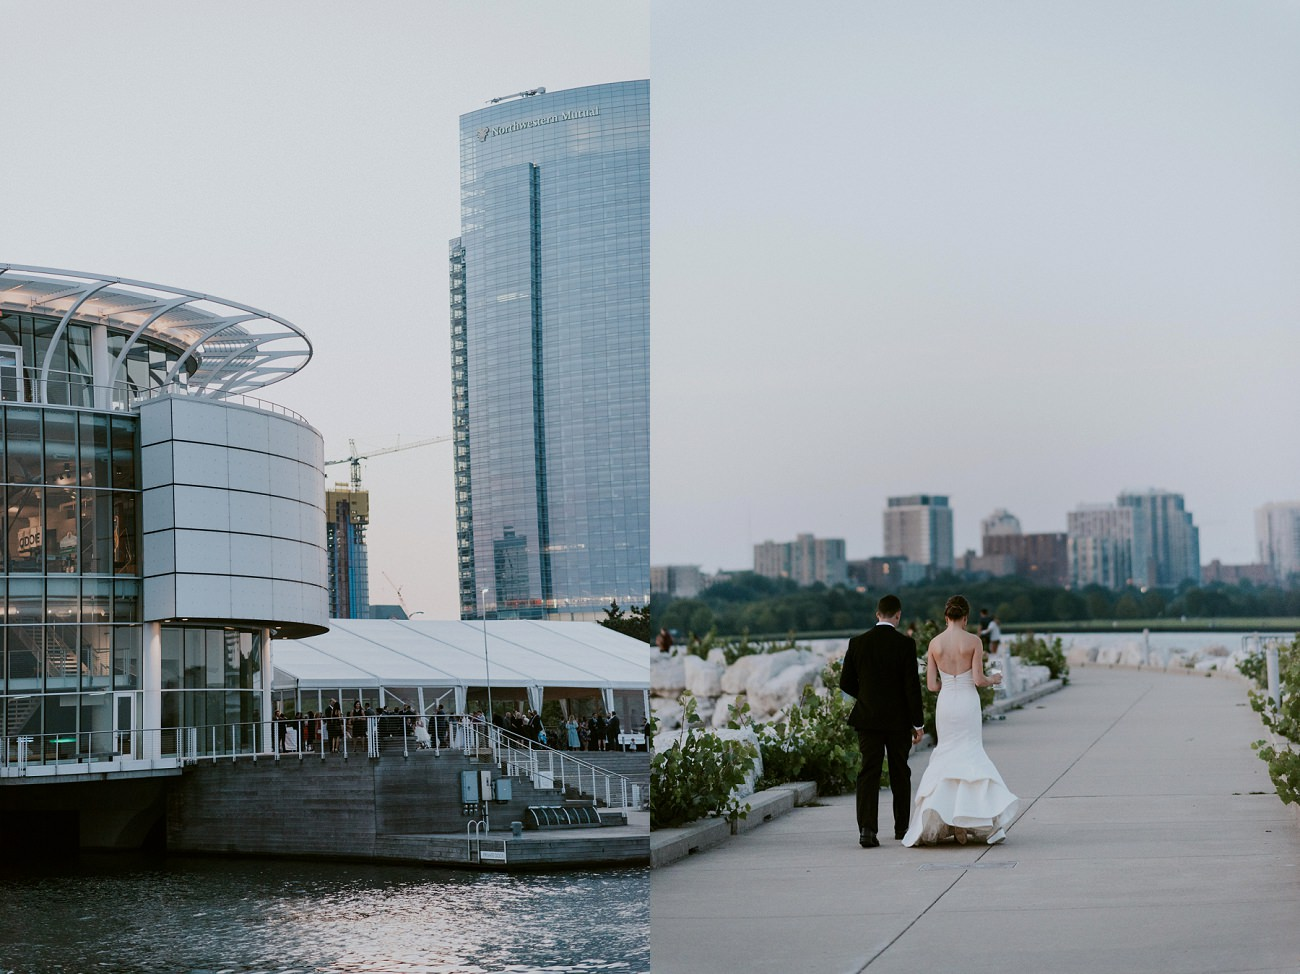 Discovery World Milwaukee Wisconsin Wedding, Elegant Black Tie Wedding Milwaukee Wisconsin - Natural Intuition Photography Milwaukee Wedding Photographer